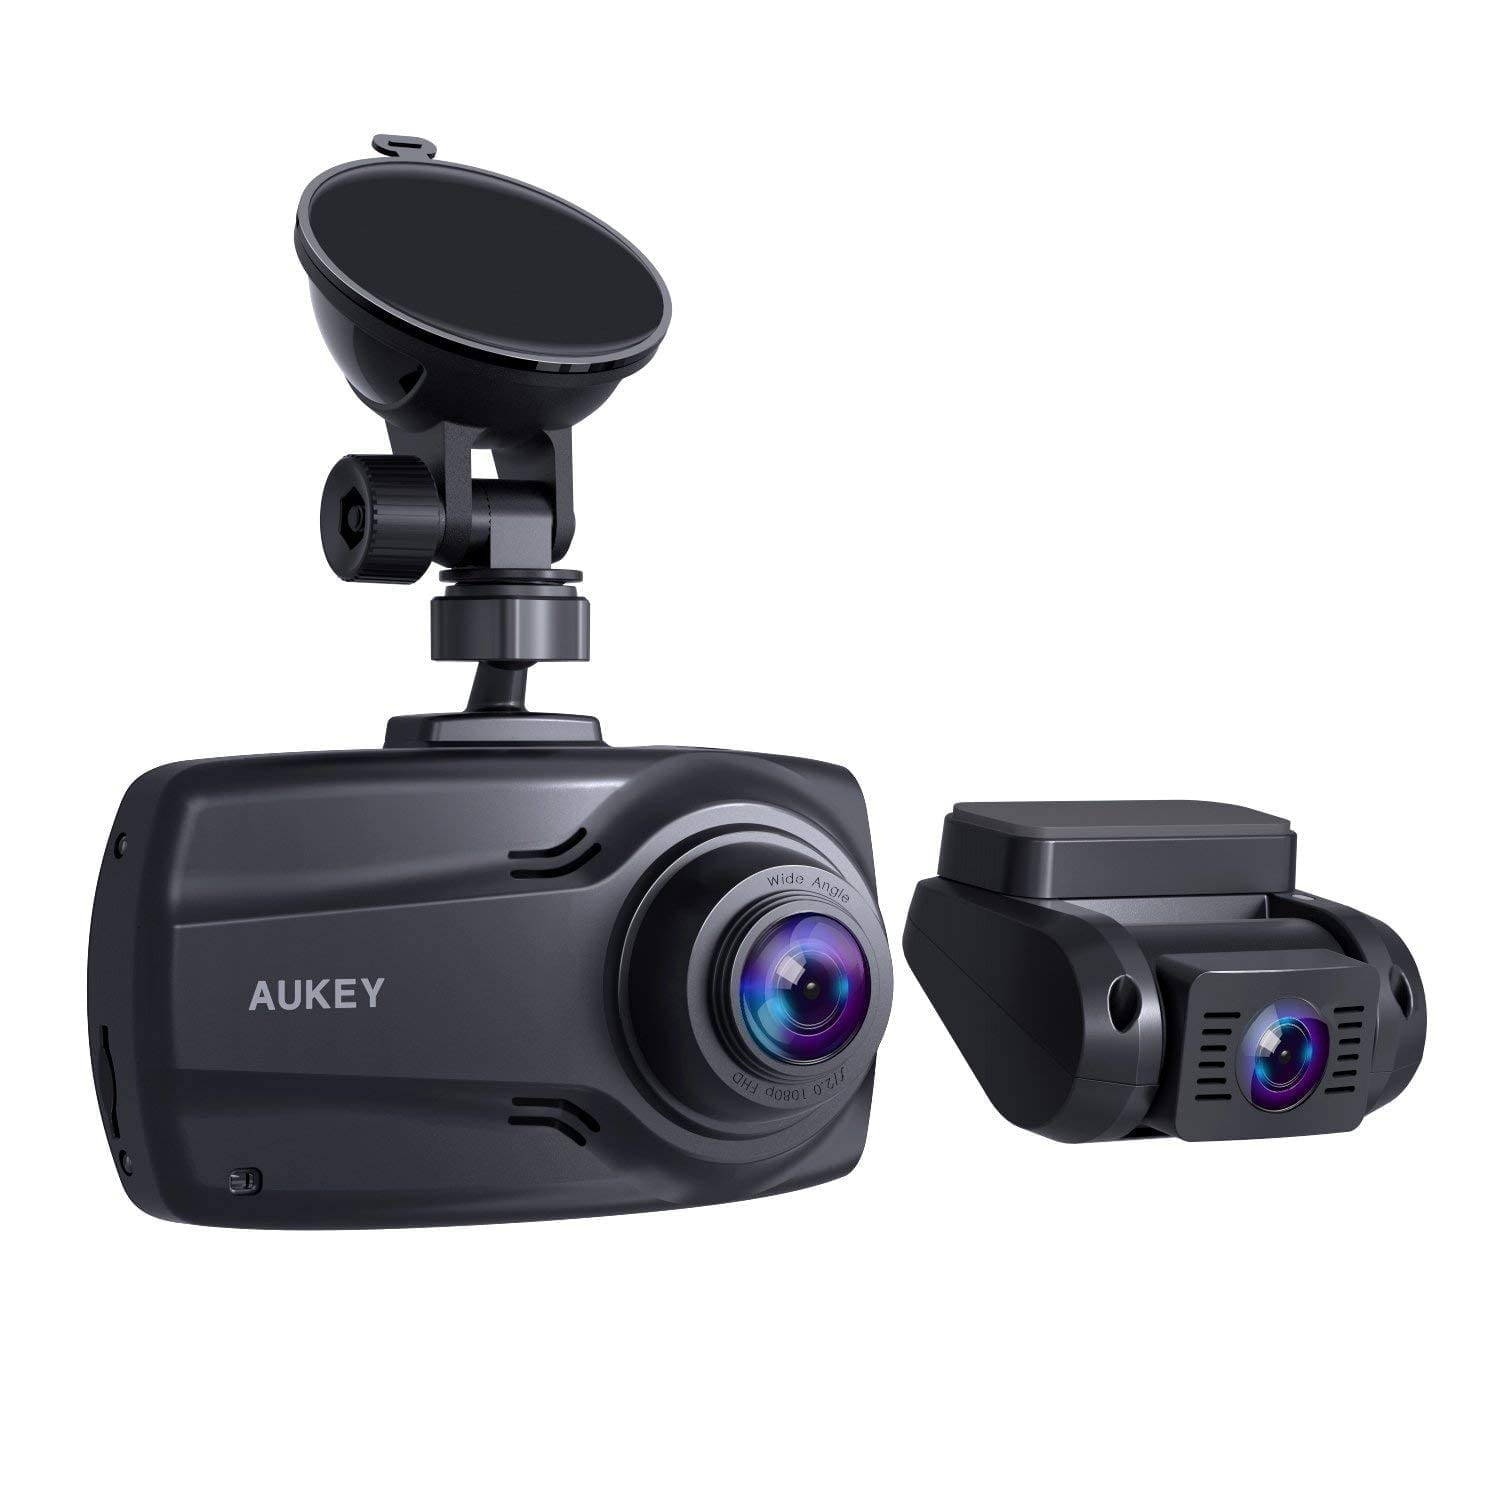 AUKEY 1080P dual dash cams with 2.7'' screen, full HD front and rear camera, 6 lane view, and 170o wide view angle lens